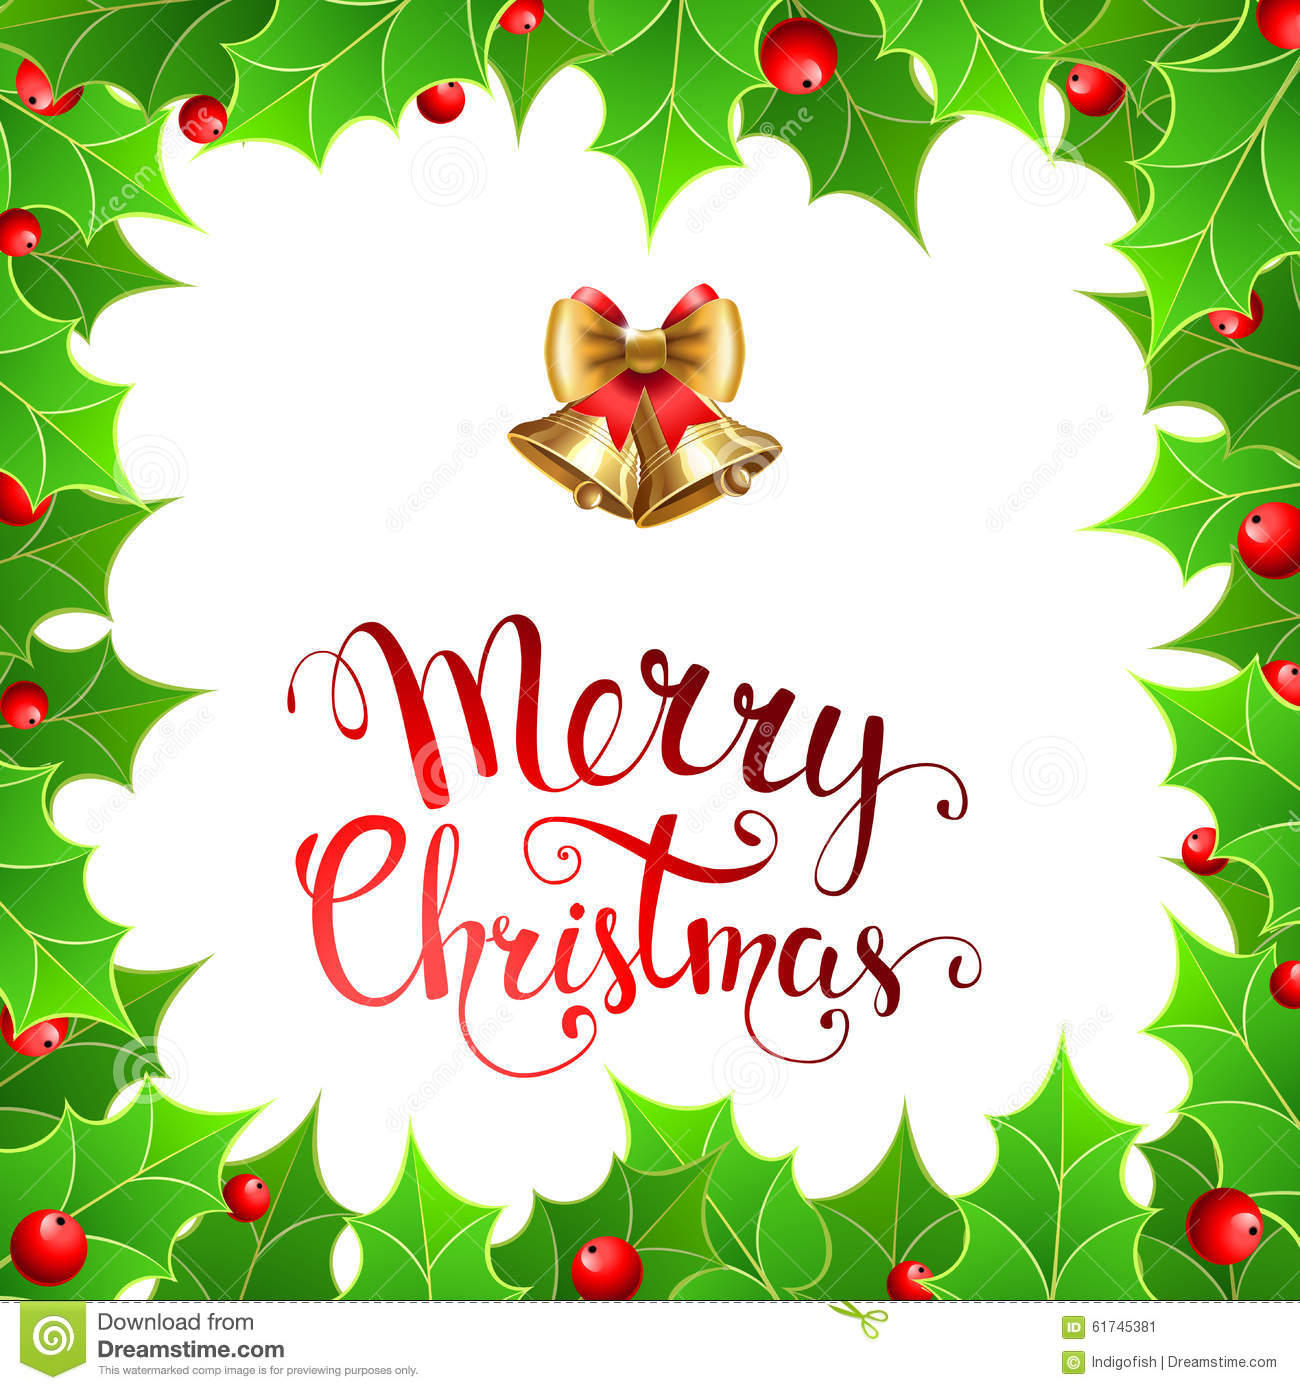 Christmas Background With Holly Berry And Handwritten Text